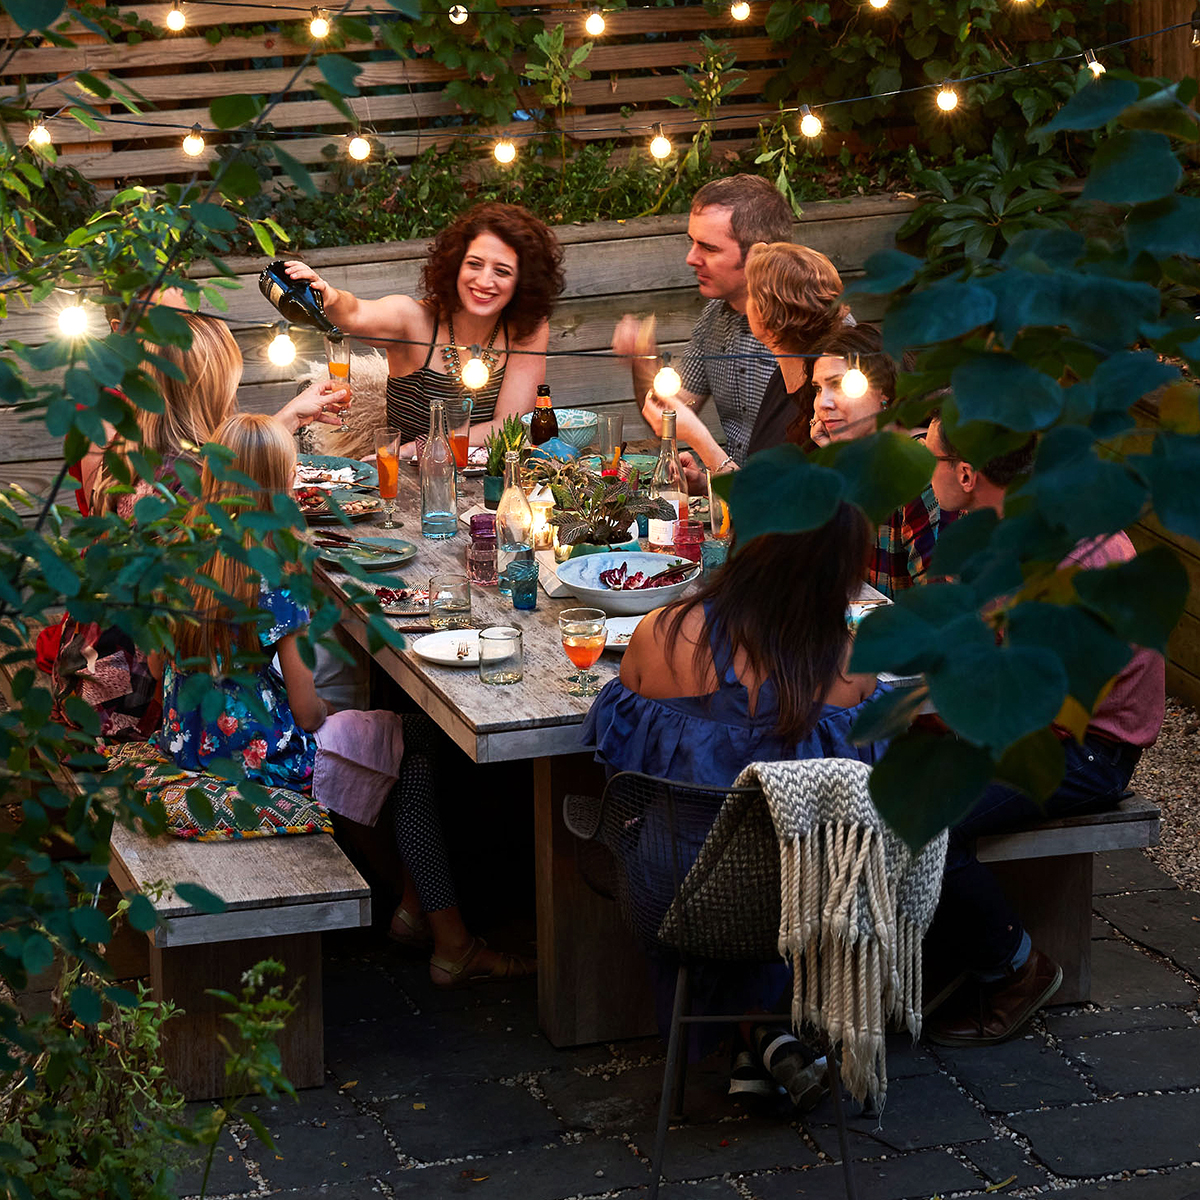 summer outdoor dinner party people family